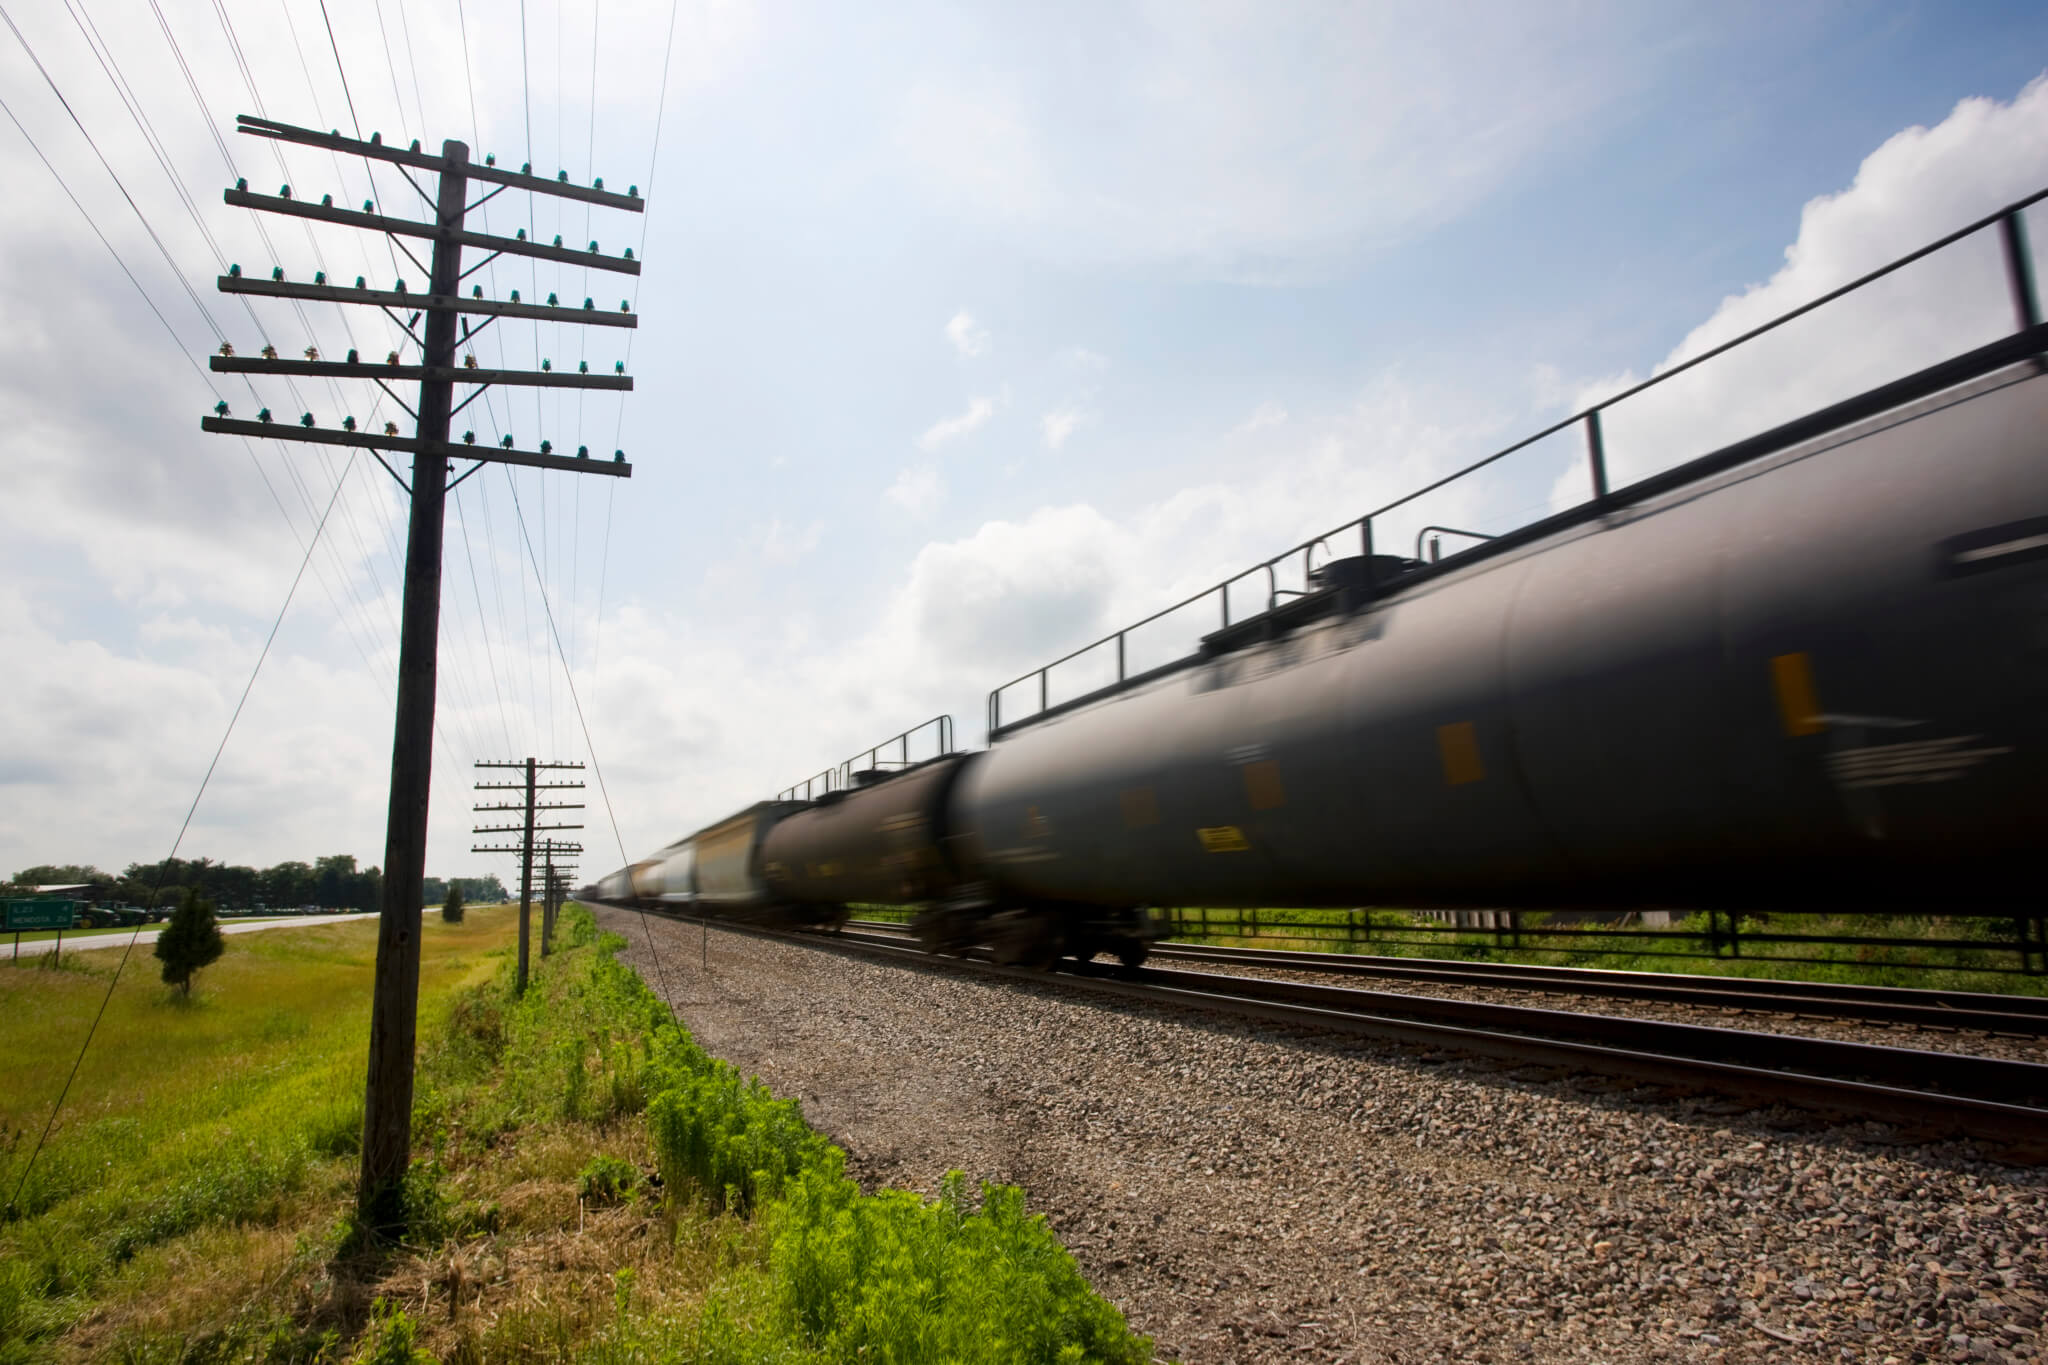 rail scales are important for rail freight businesses